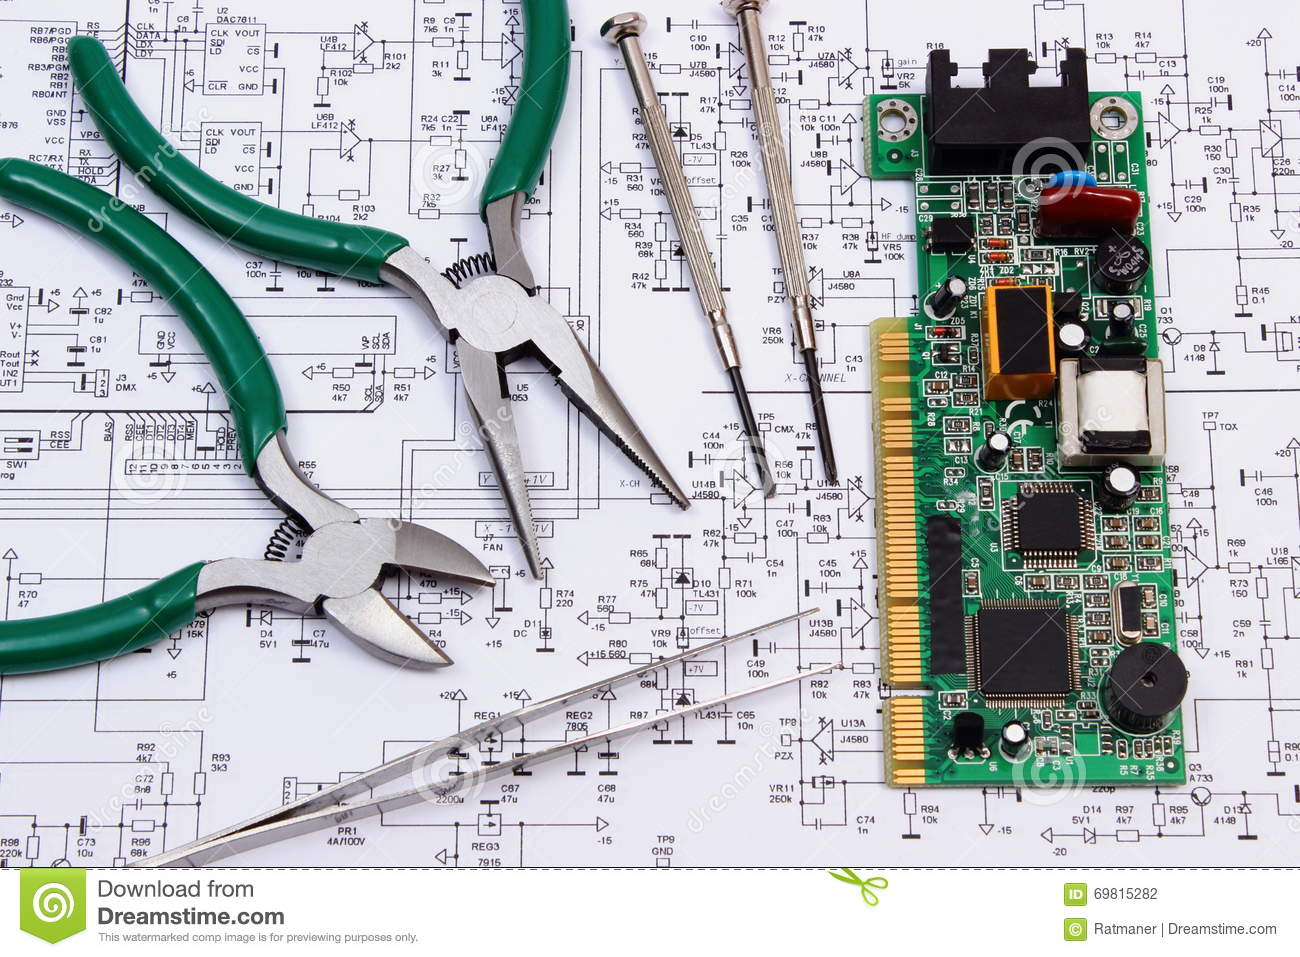 Printed Circuit Board And Precision Tools On Diagram Of Electronics Electric Technology